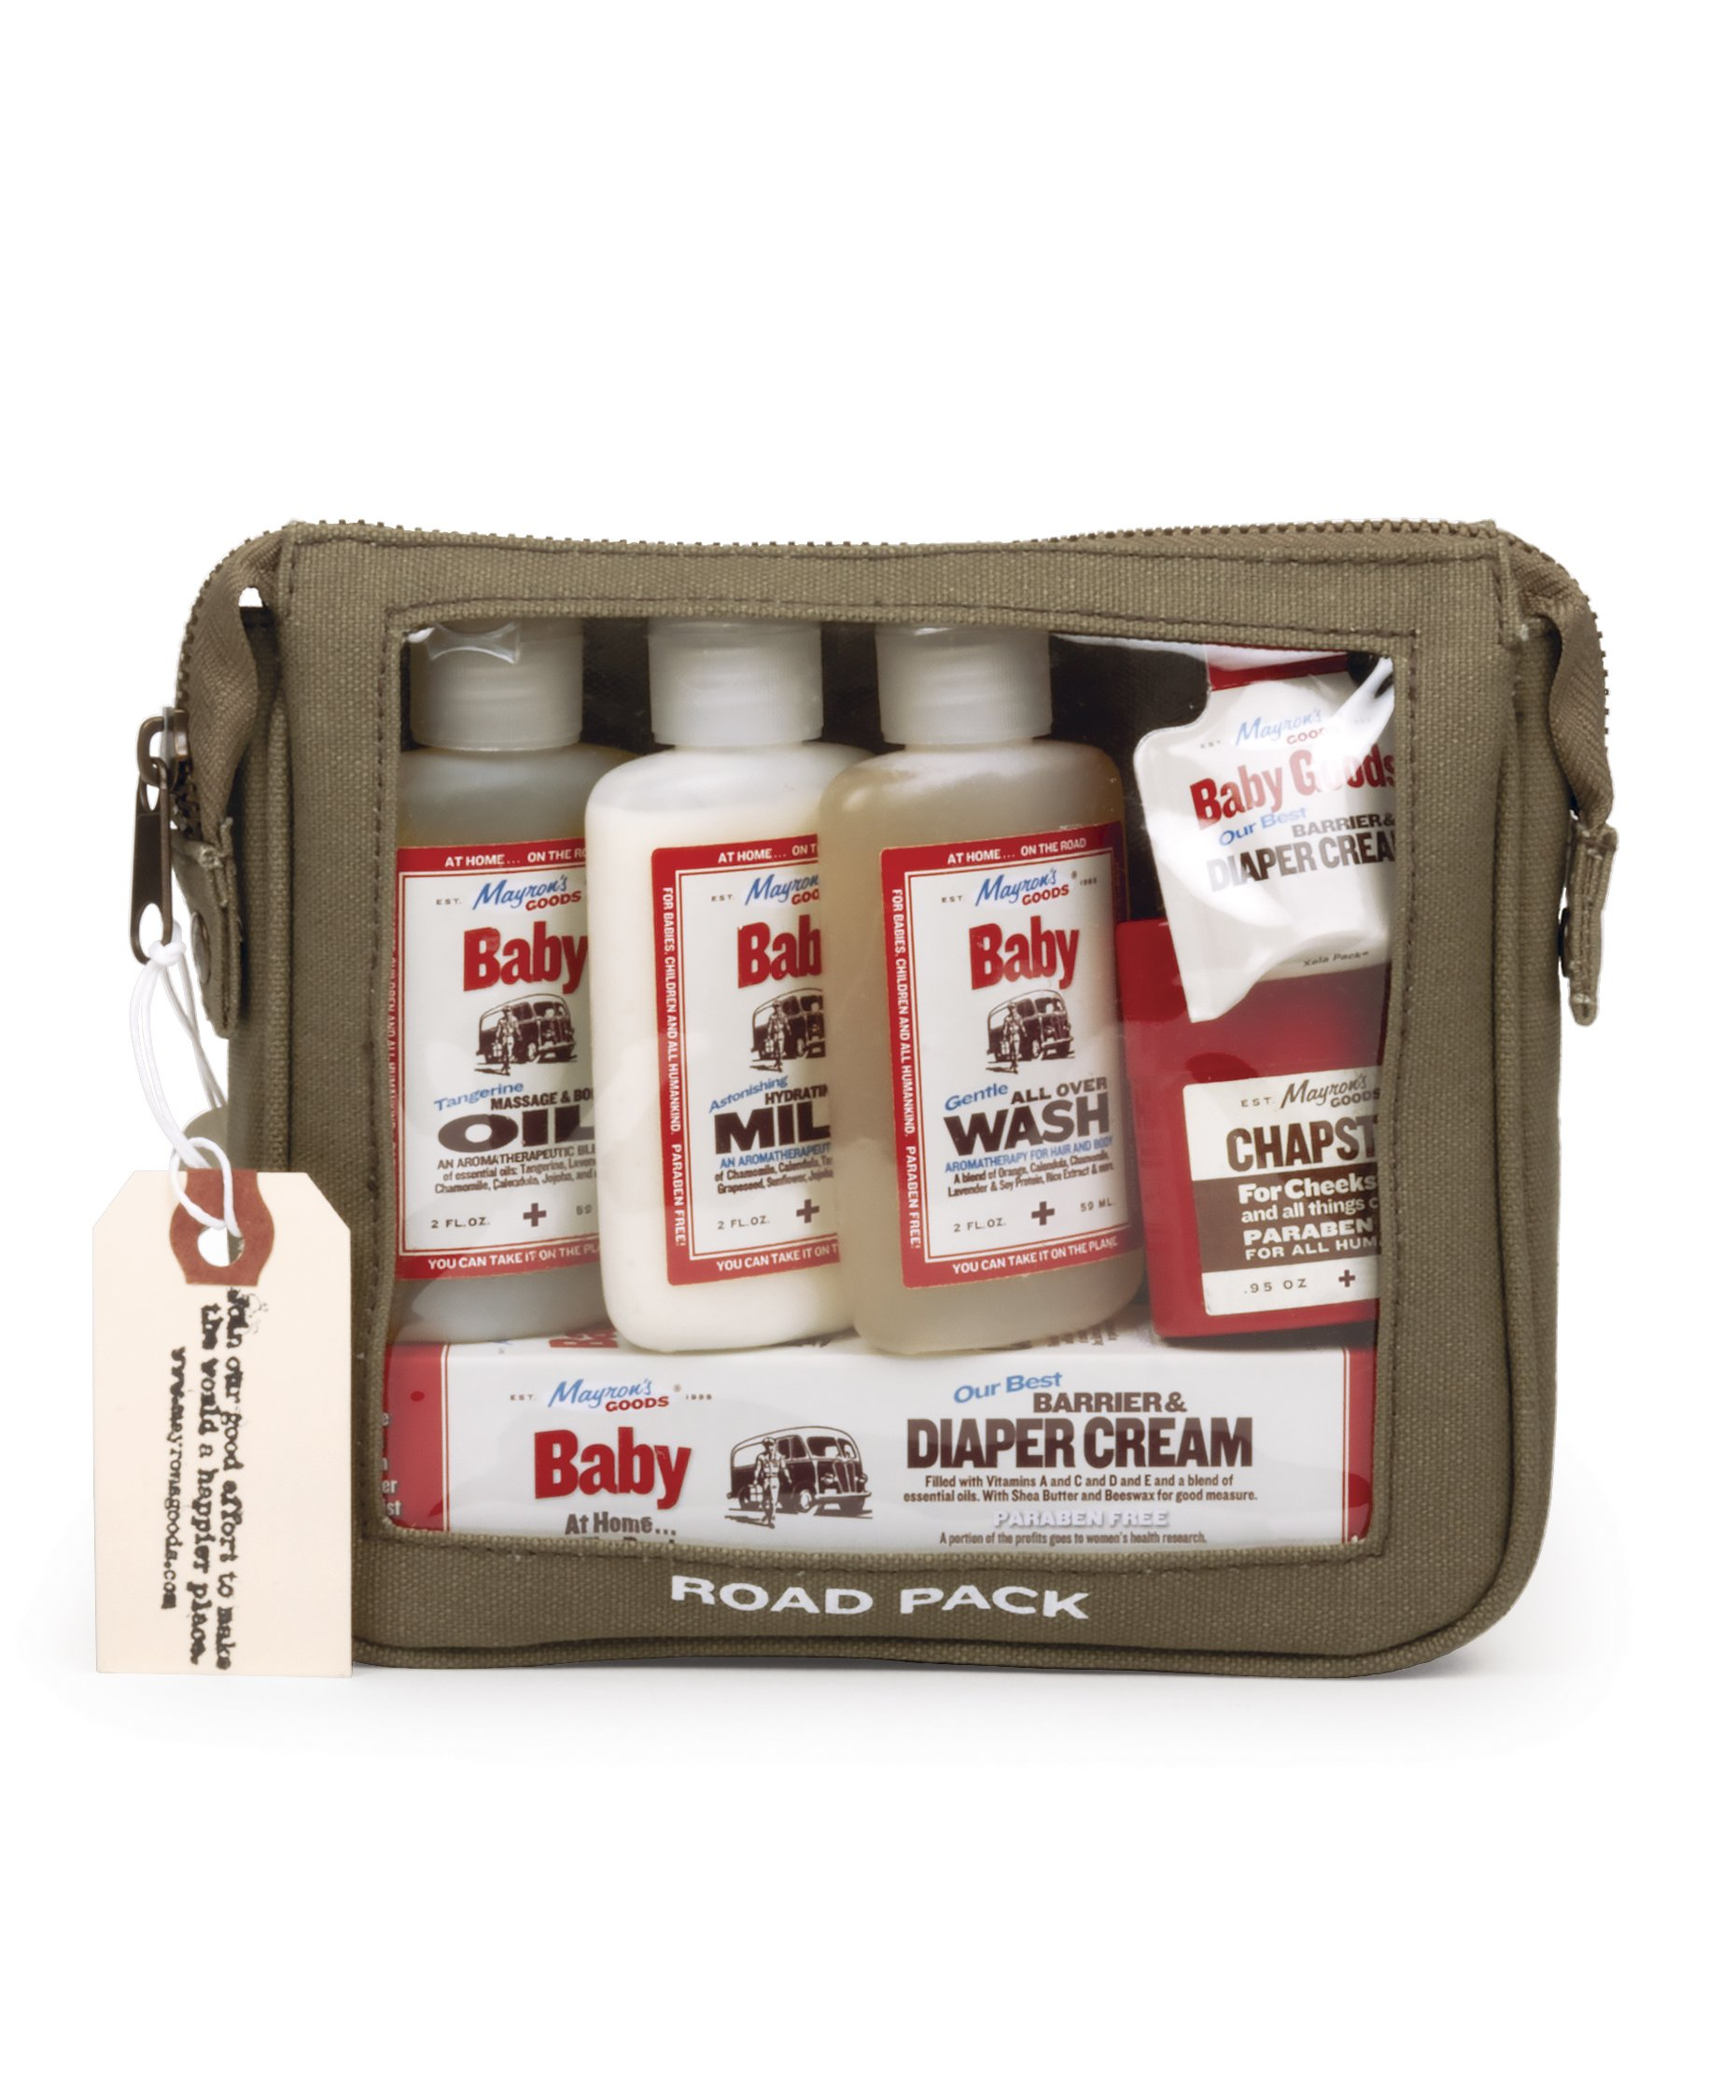 Mayron's Goods Roadpack: Travel Size Baby Goods Natural Skin Care